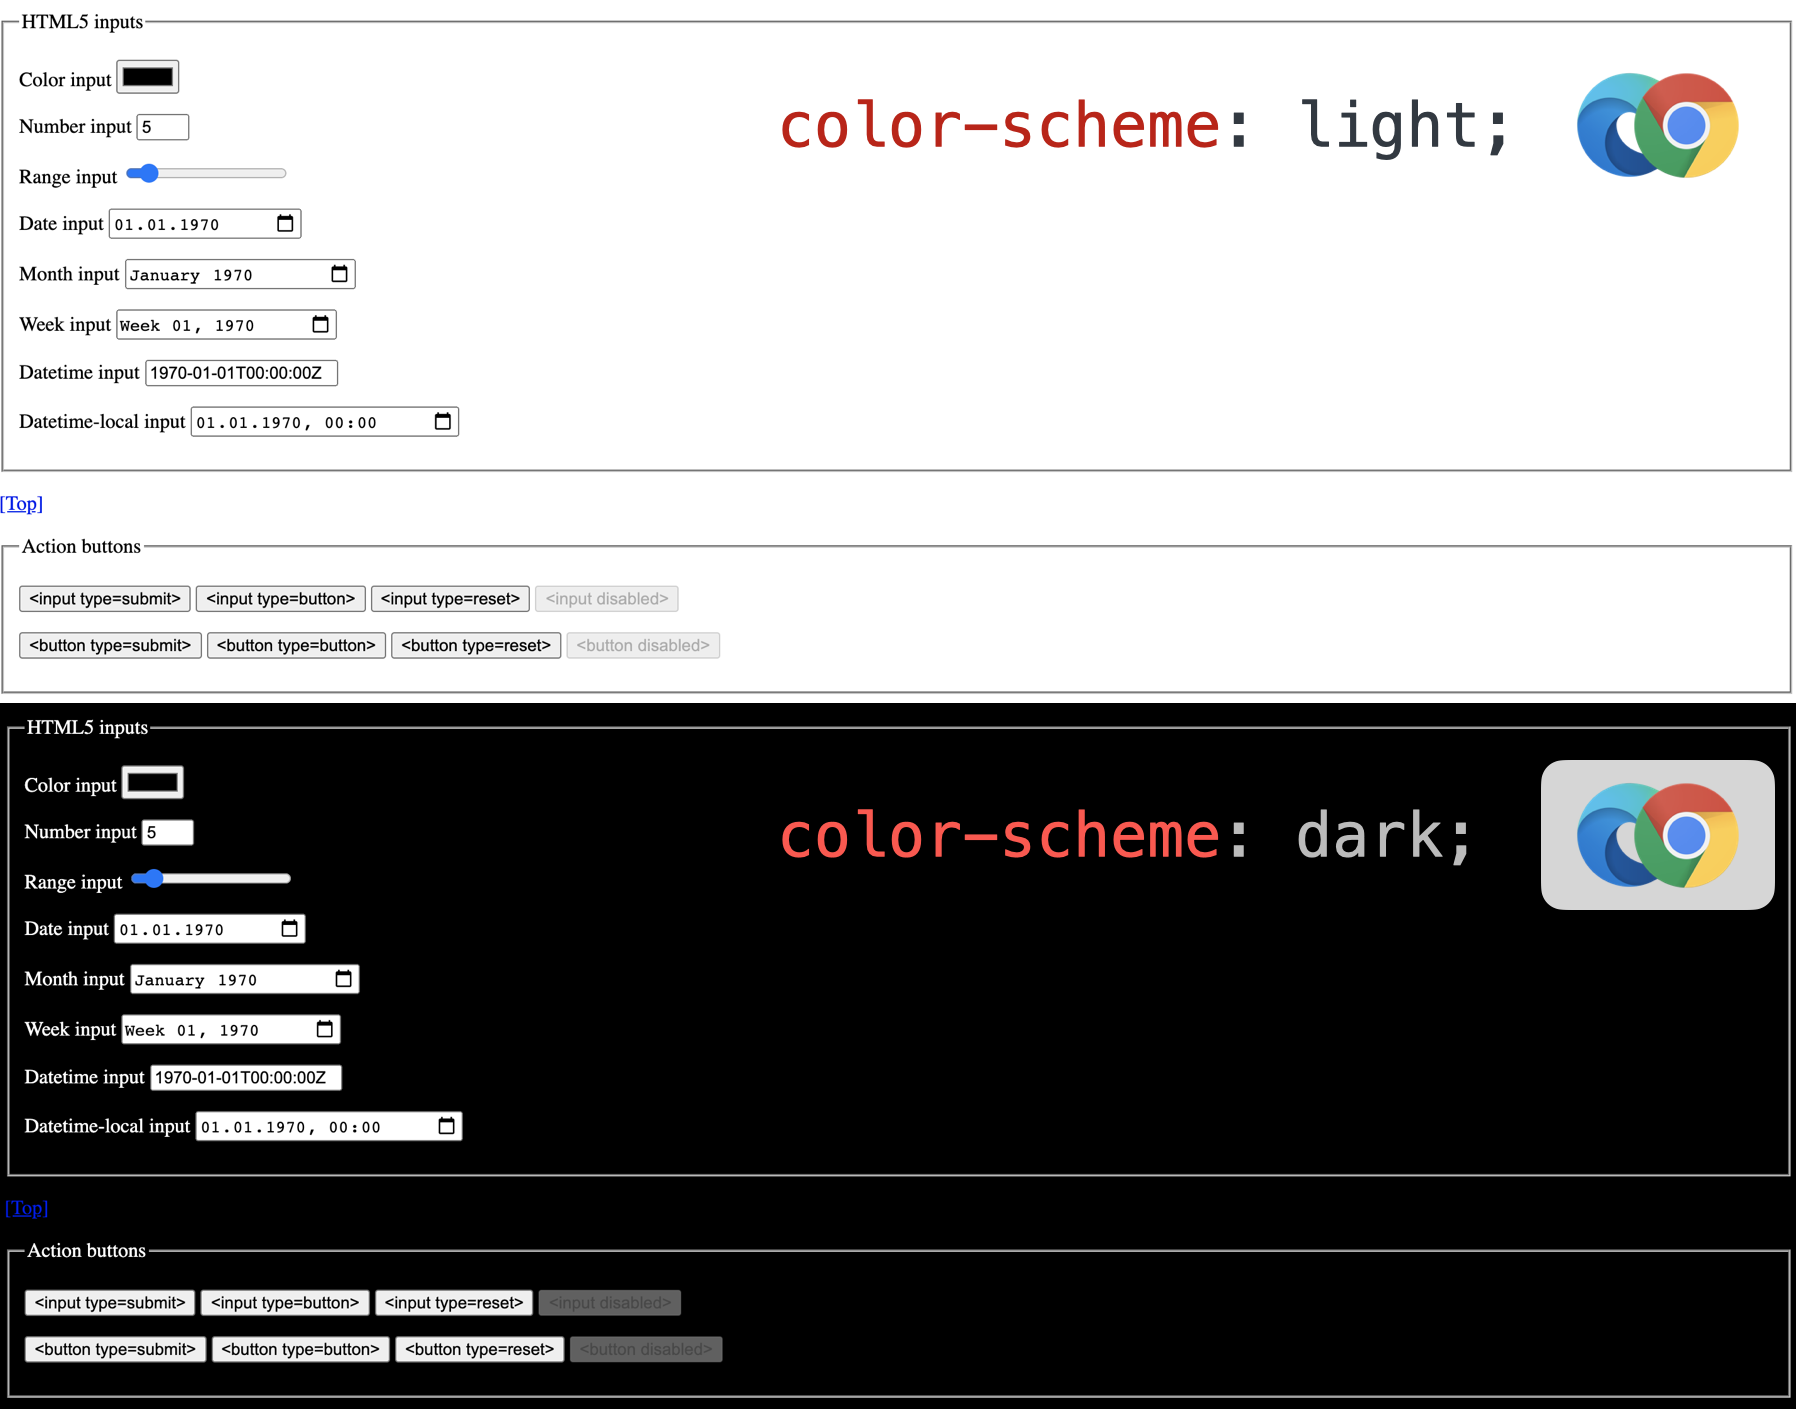 Chrome UI elements not responding to color-scheme: dark